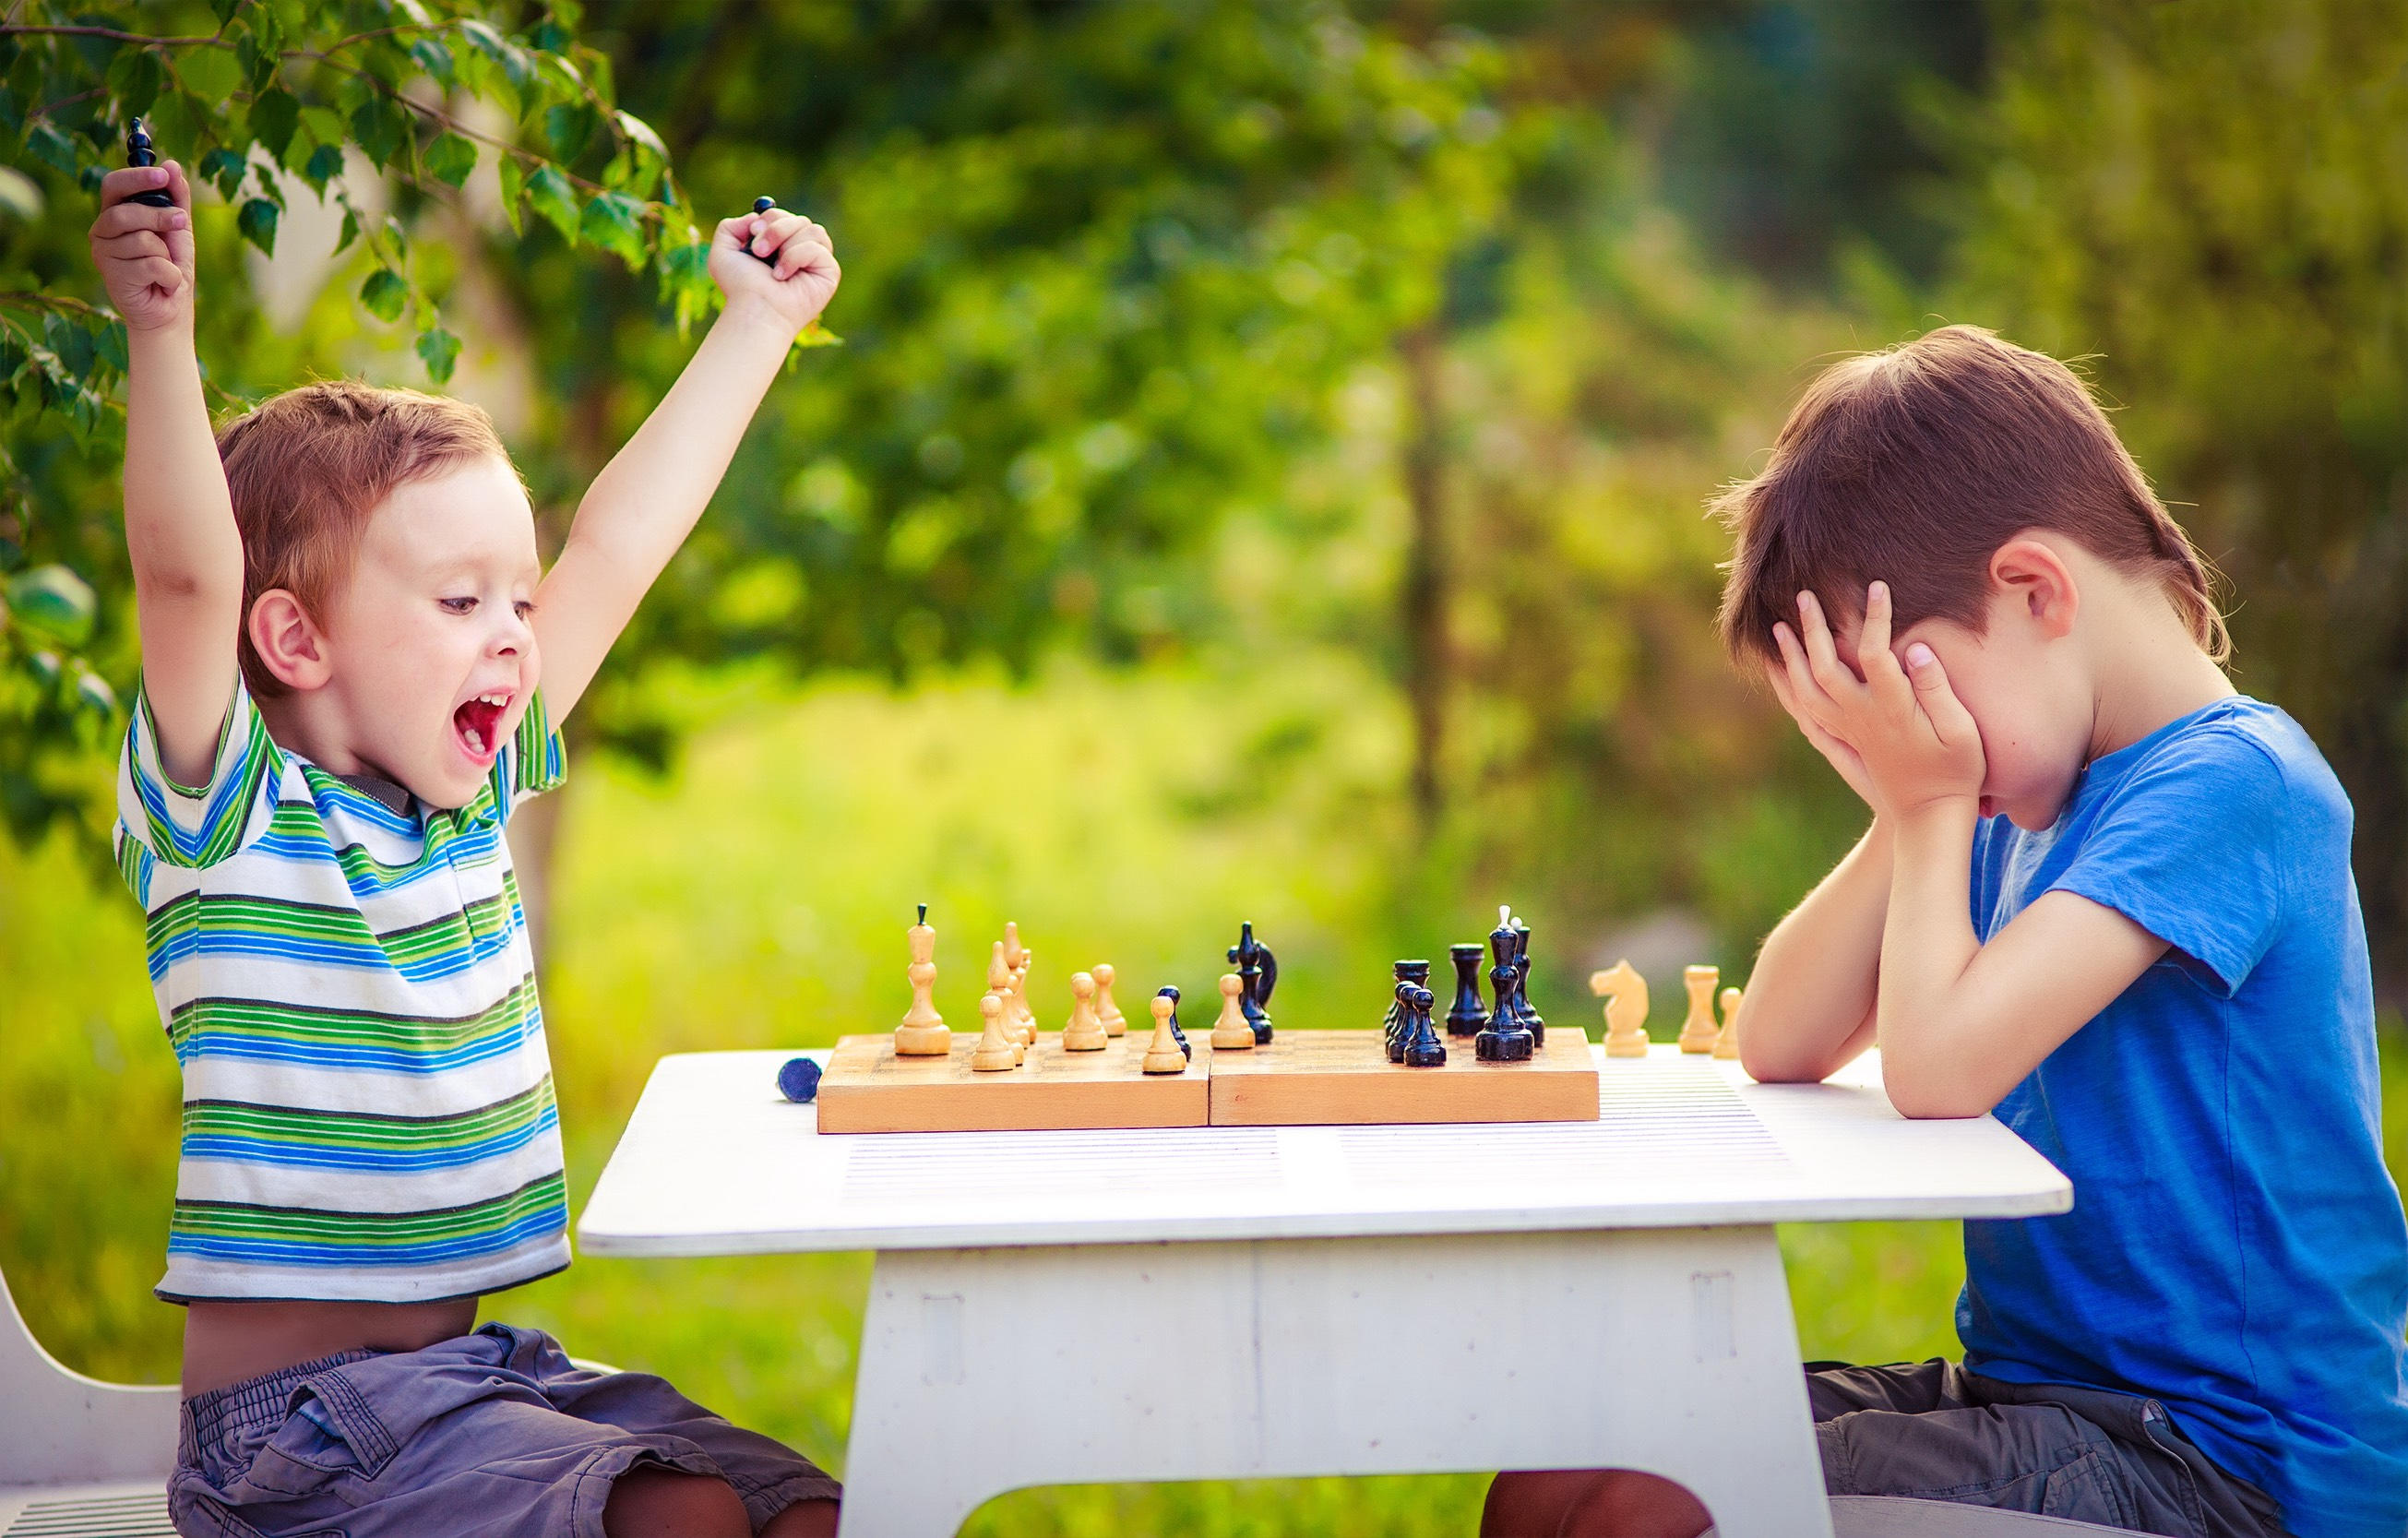 two young chess players outdoors. boy rejoices won a game of chess. sad opponent covered his face, and upset losing